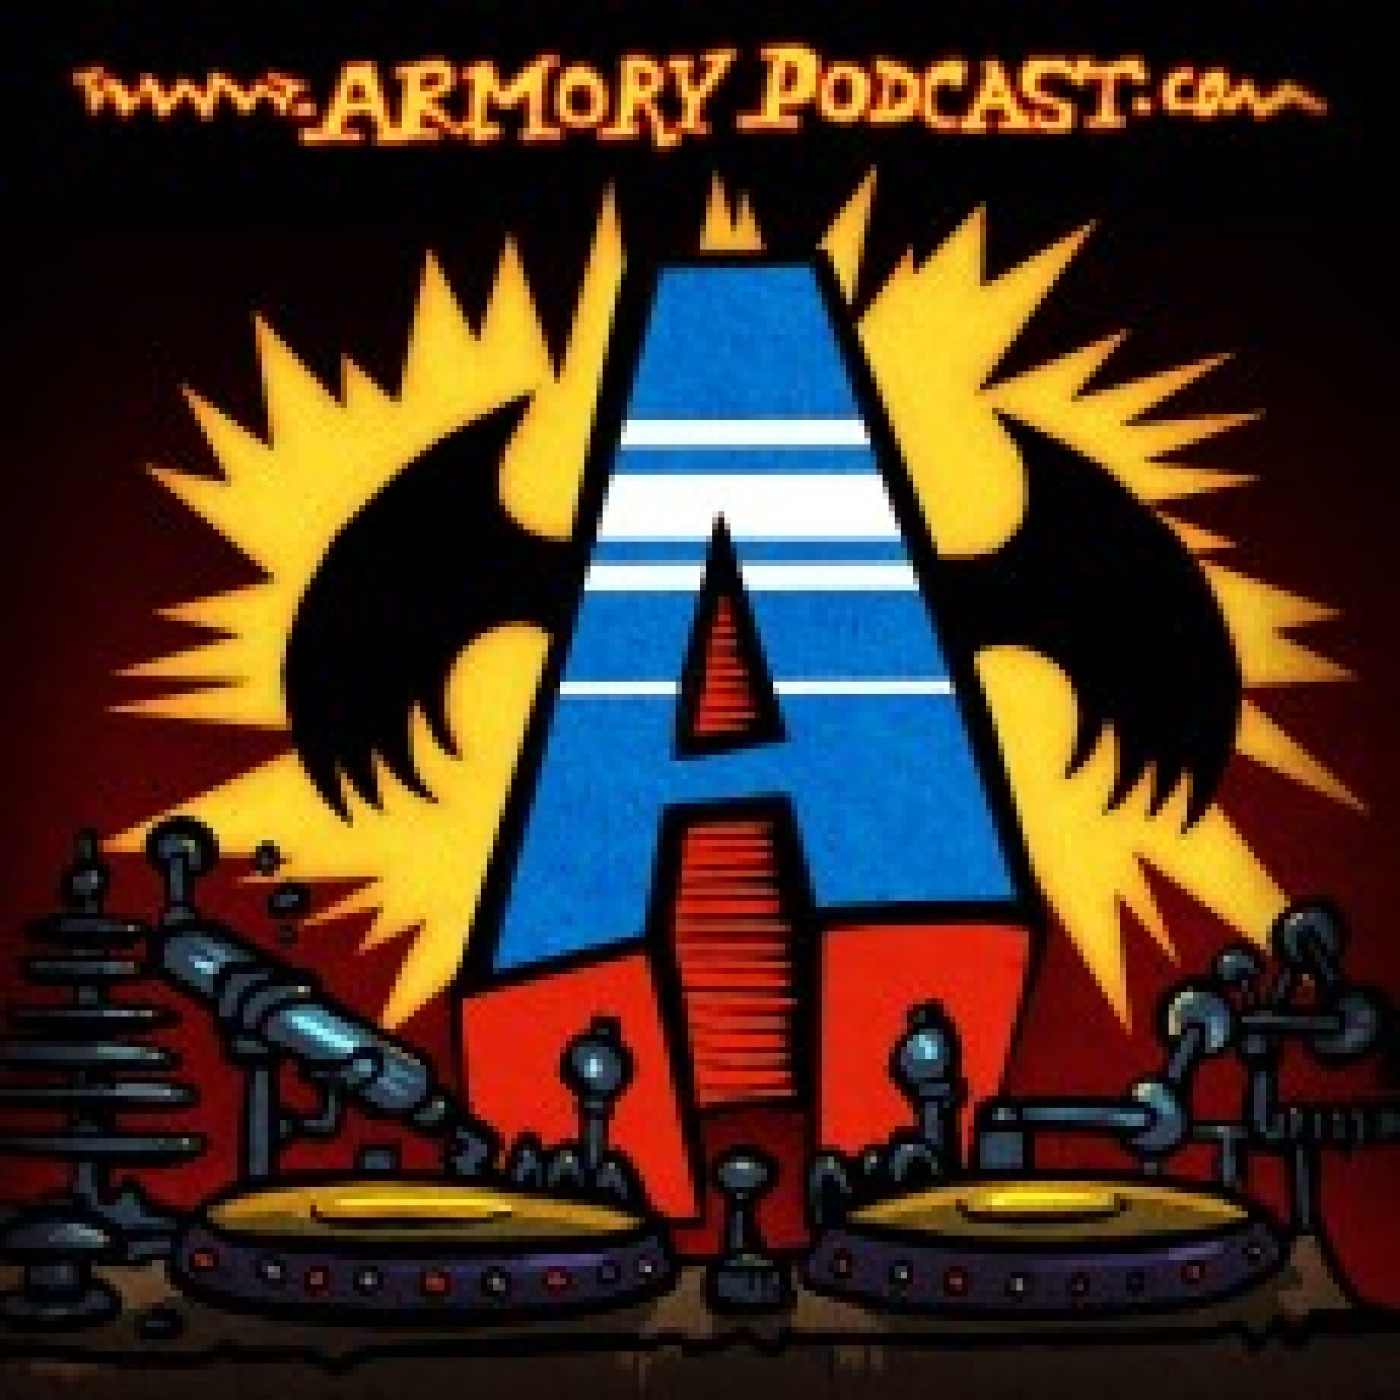 The Armory Podcast